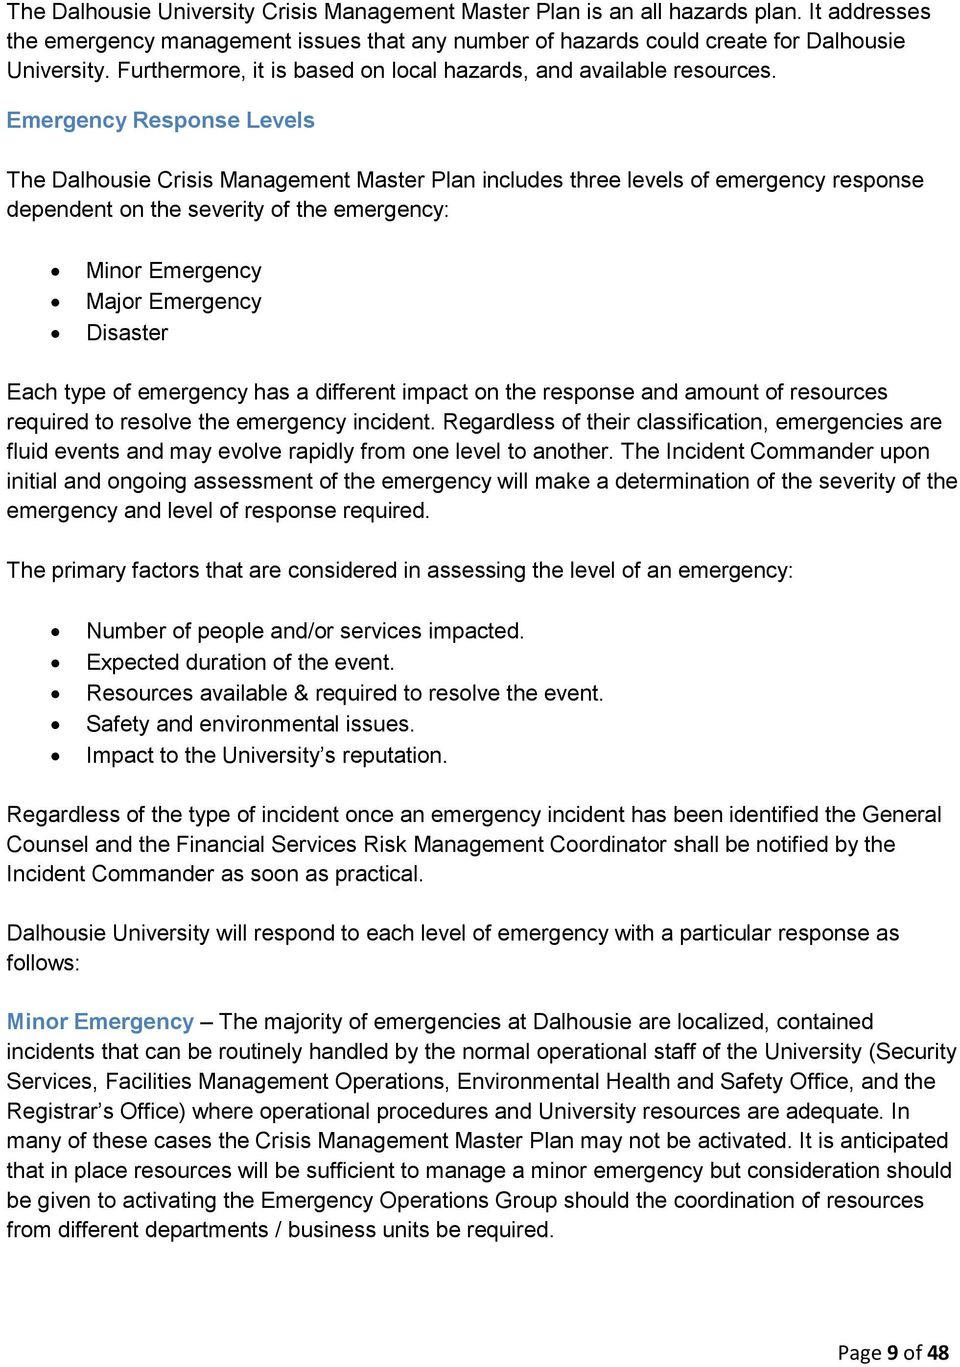 Emergency Response Levels The Dalhousie Crisis Management Master Plan includes three levels of emergency response dependent on the severity of the emergency: Minor Emergency Major Emergency Disaster